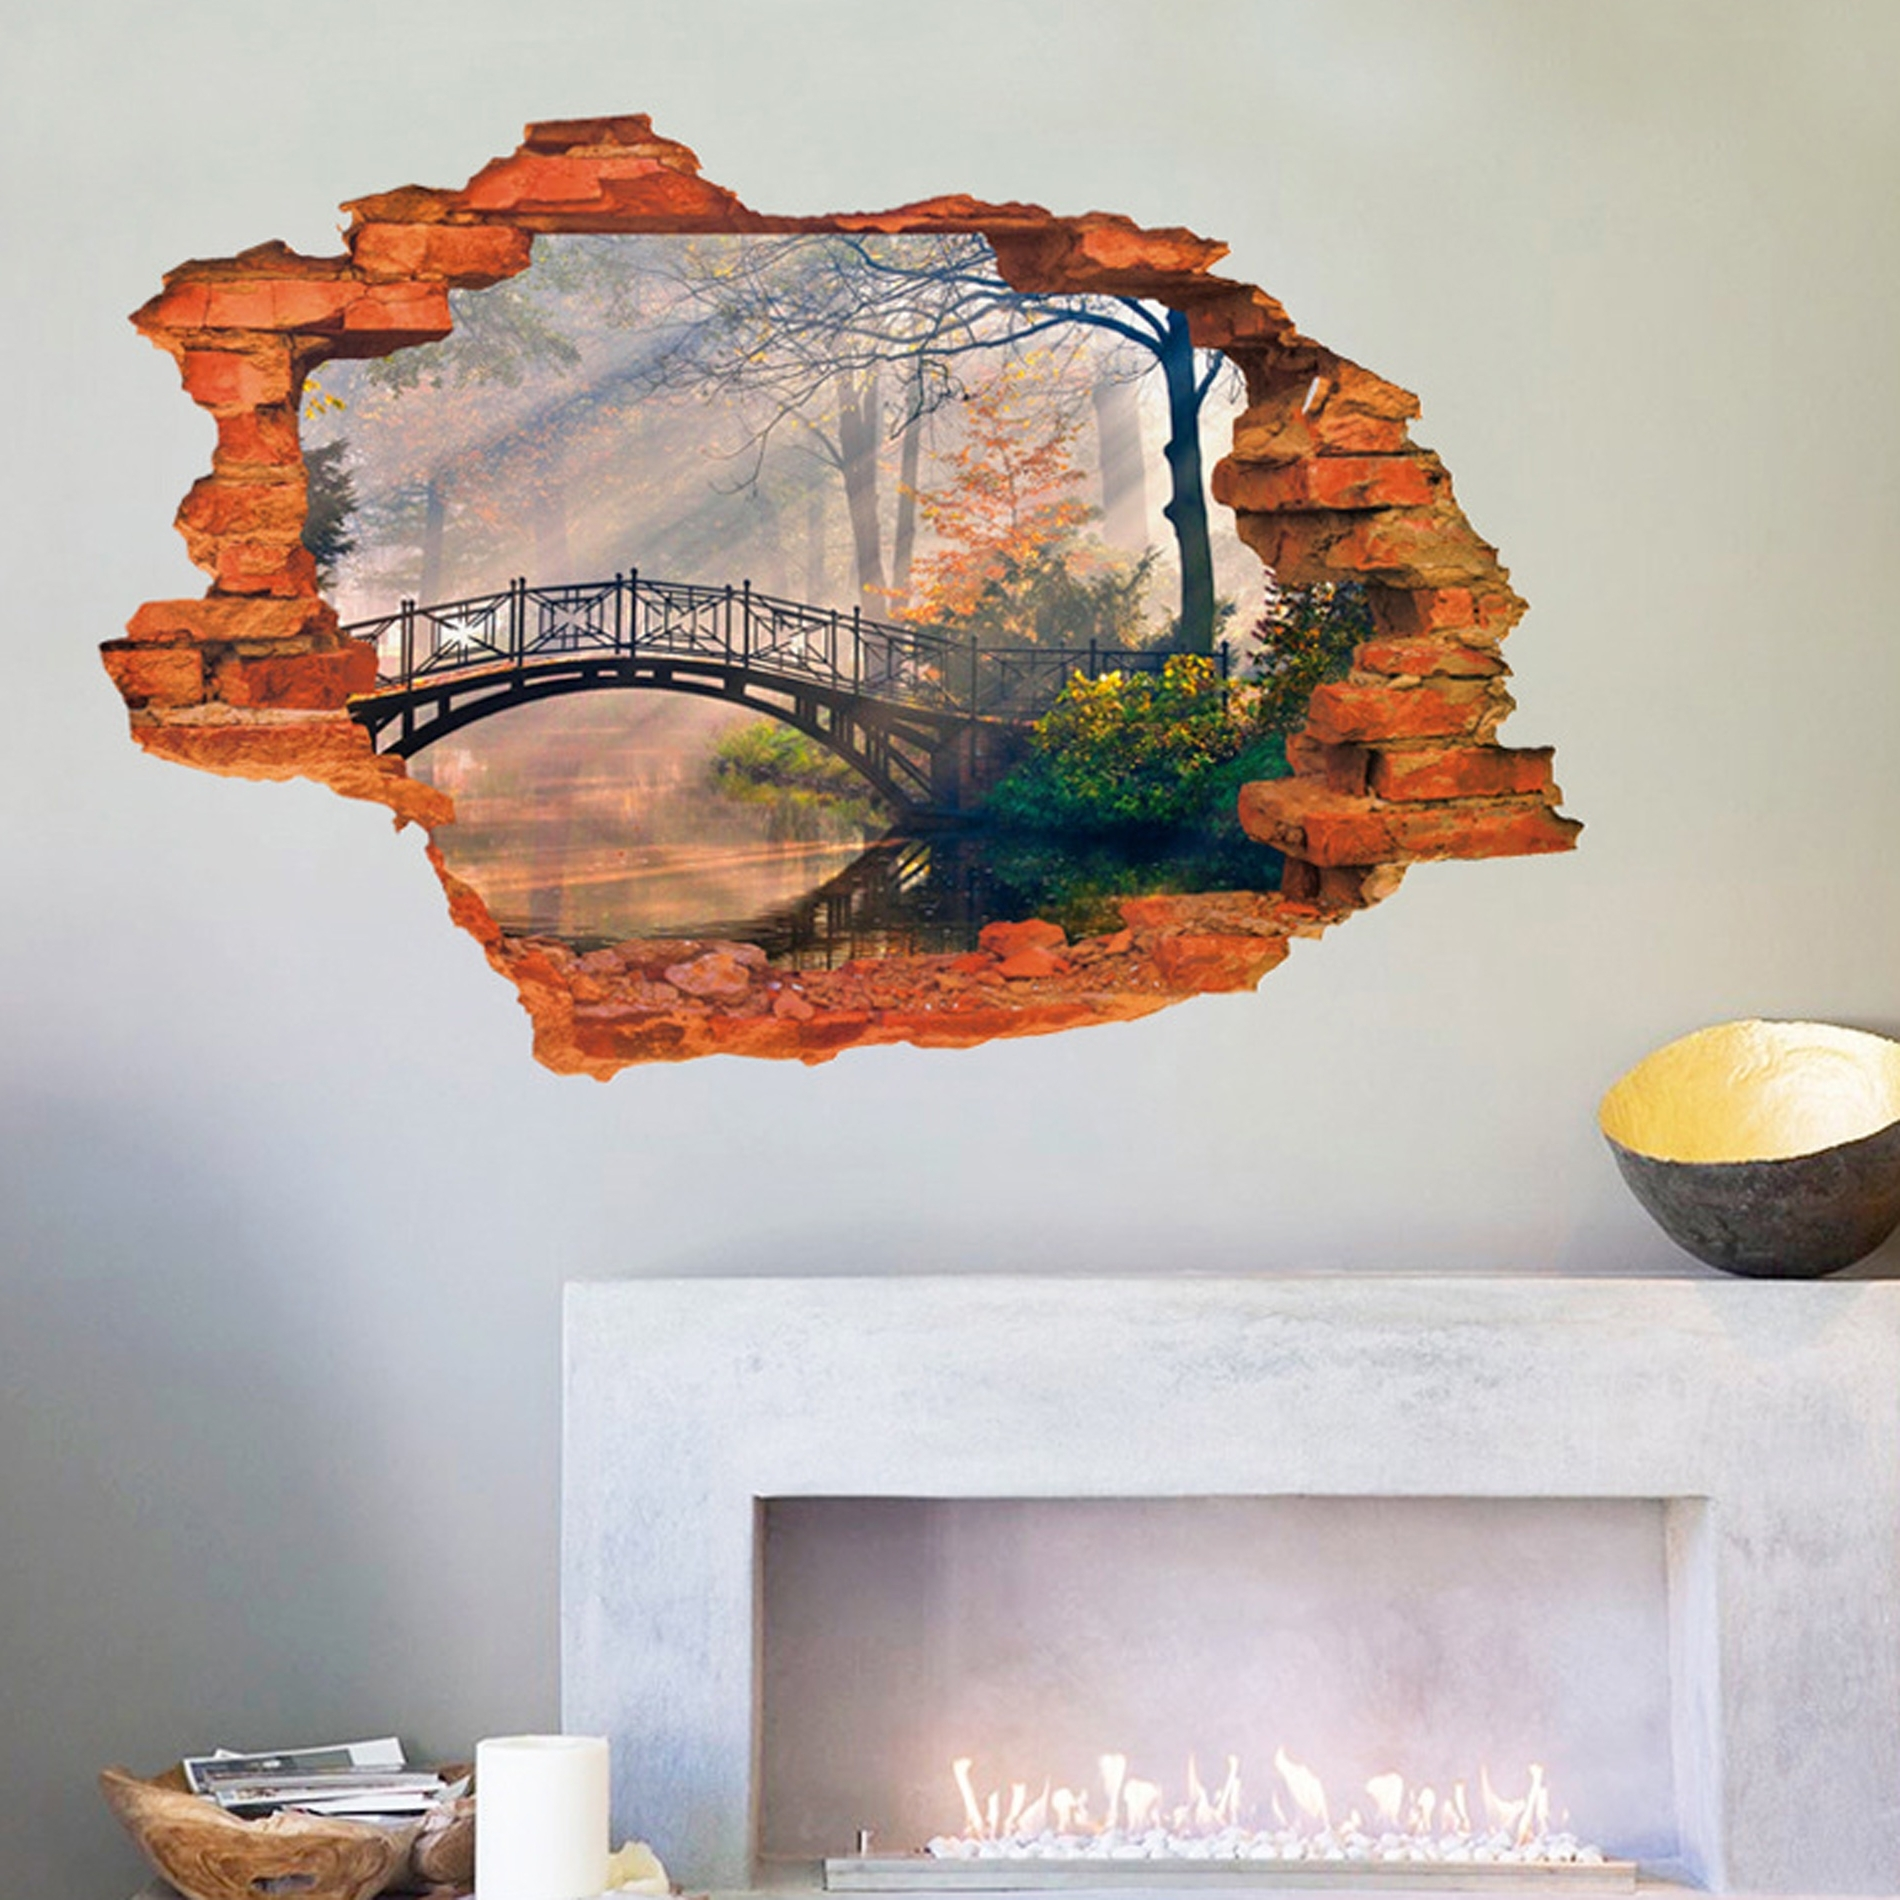 Vinyl 3D Wall Art Within Well Known Removable 3D Broken Wall Stickers Art Vinyl Mural Home Decor + Key (View 15 of 15)